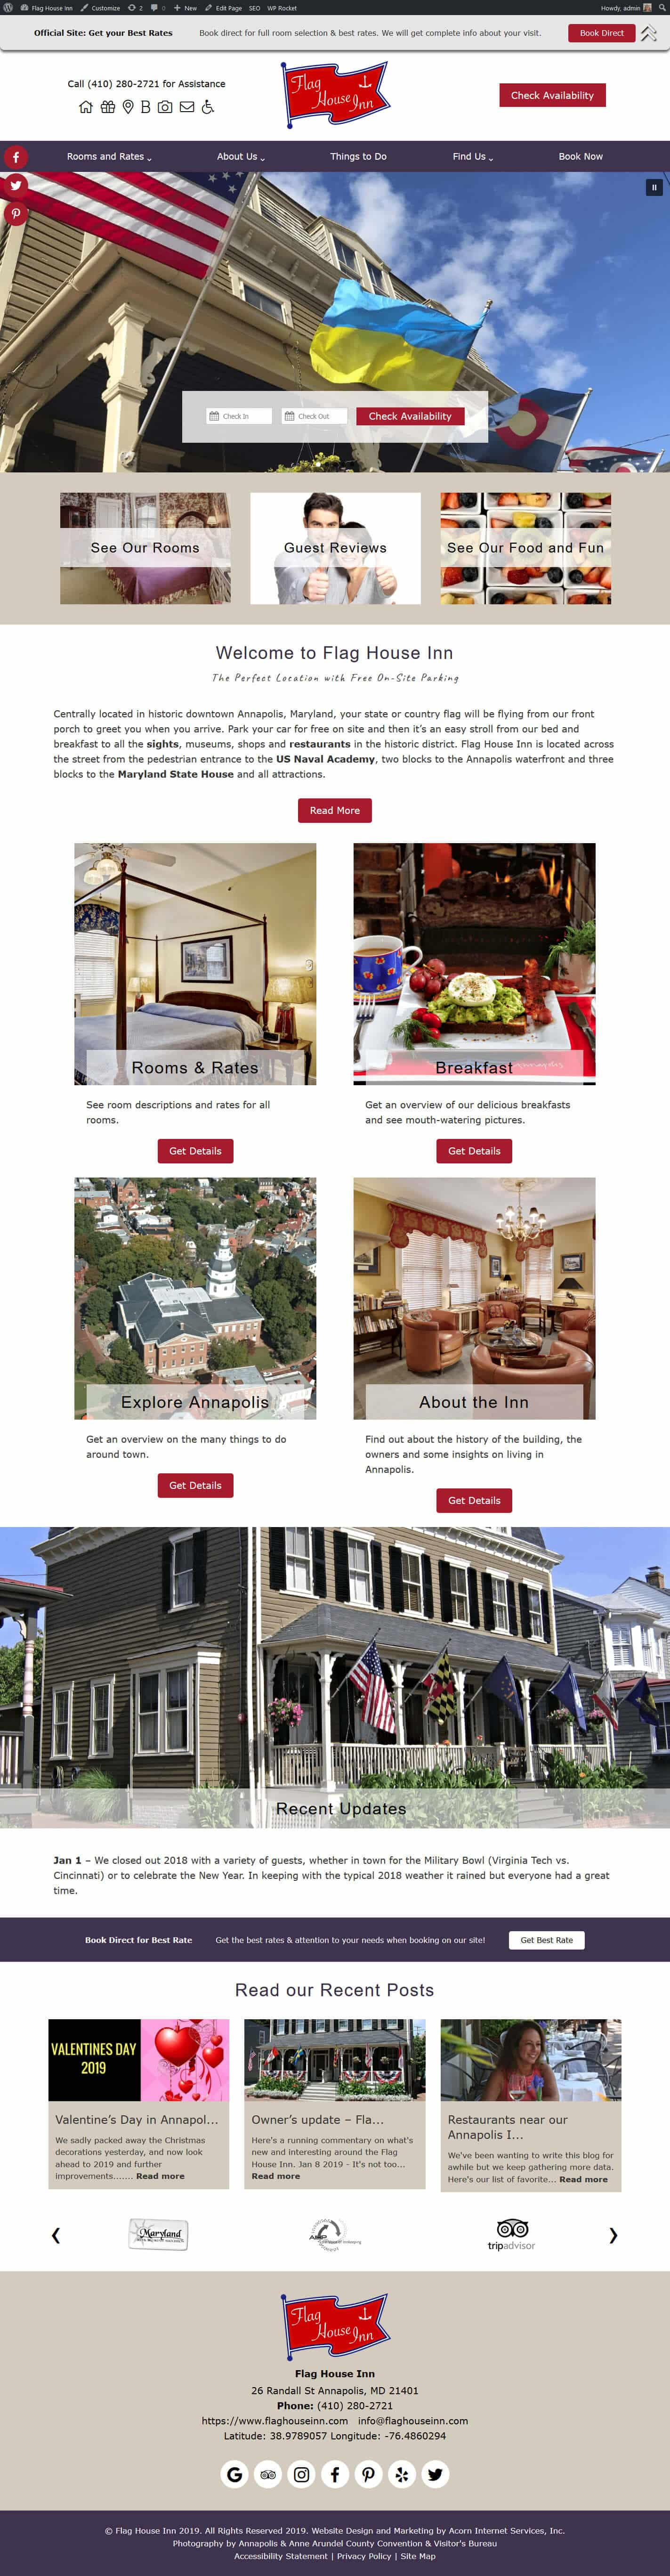 Screenshot of Flag House Inn's website home page